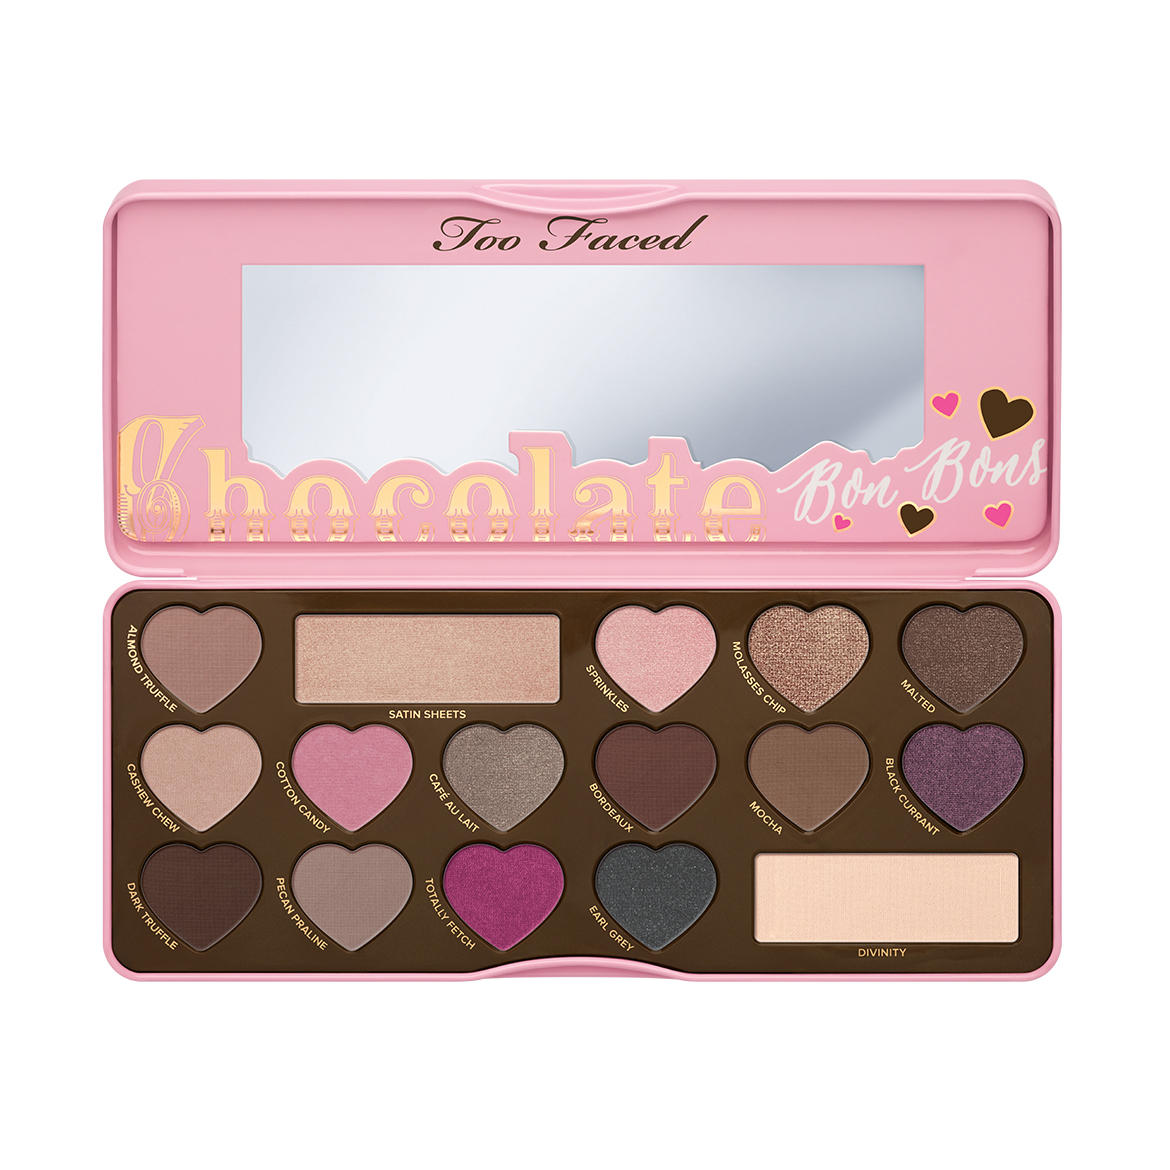 New Release Too Faced lauched New CHOCOLATE BON BONS Palette